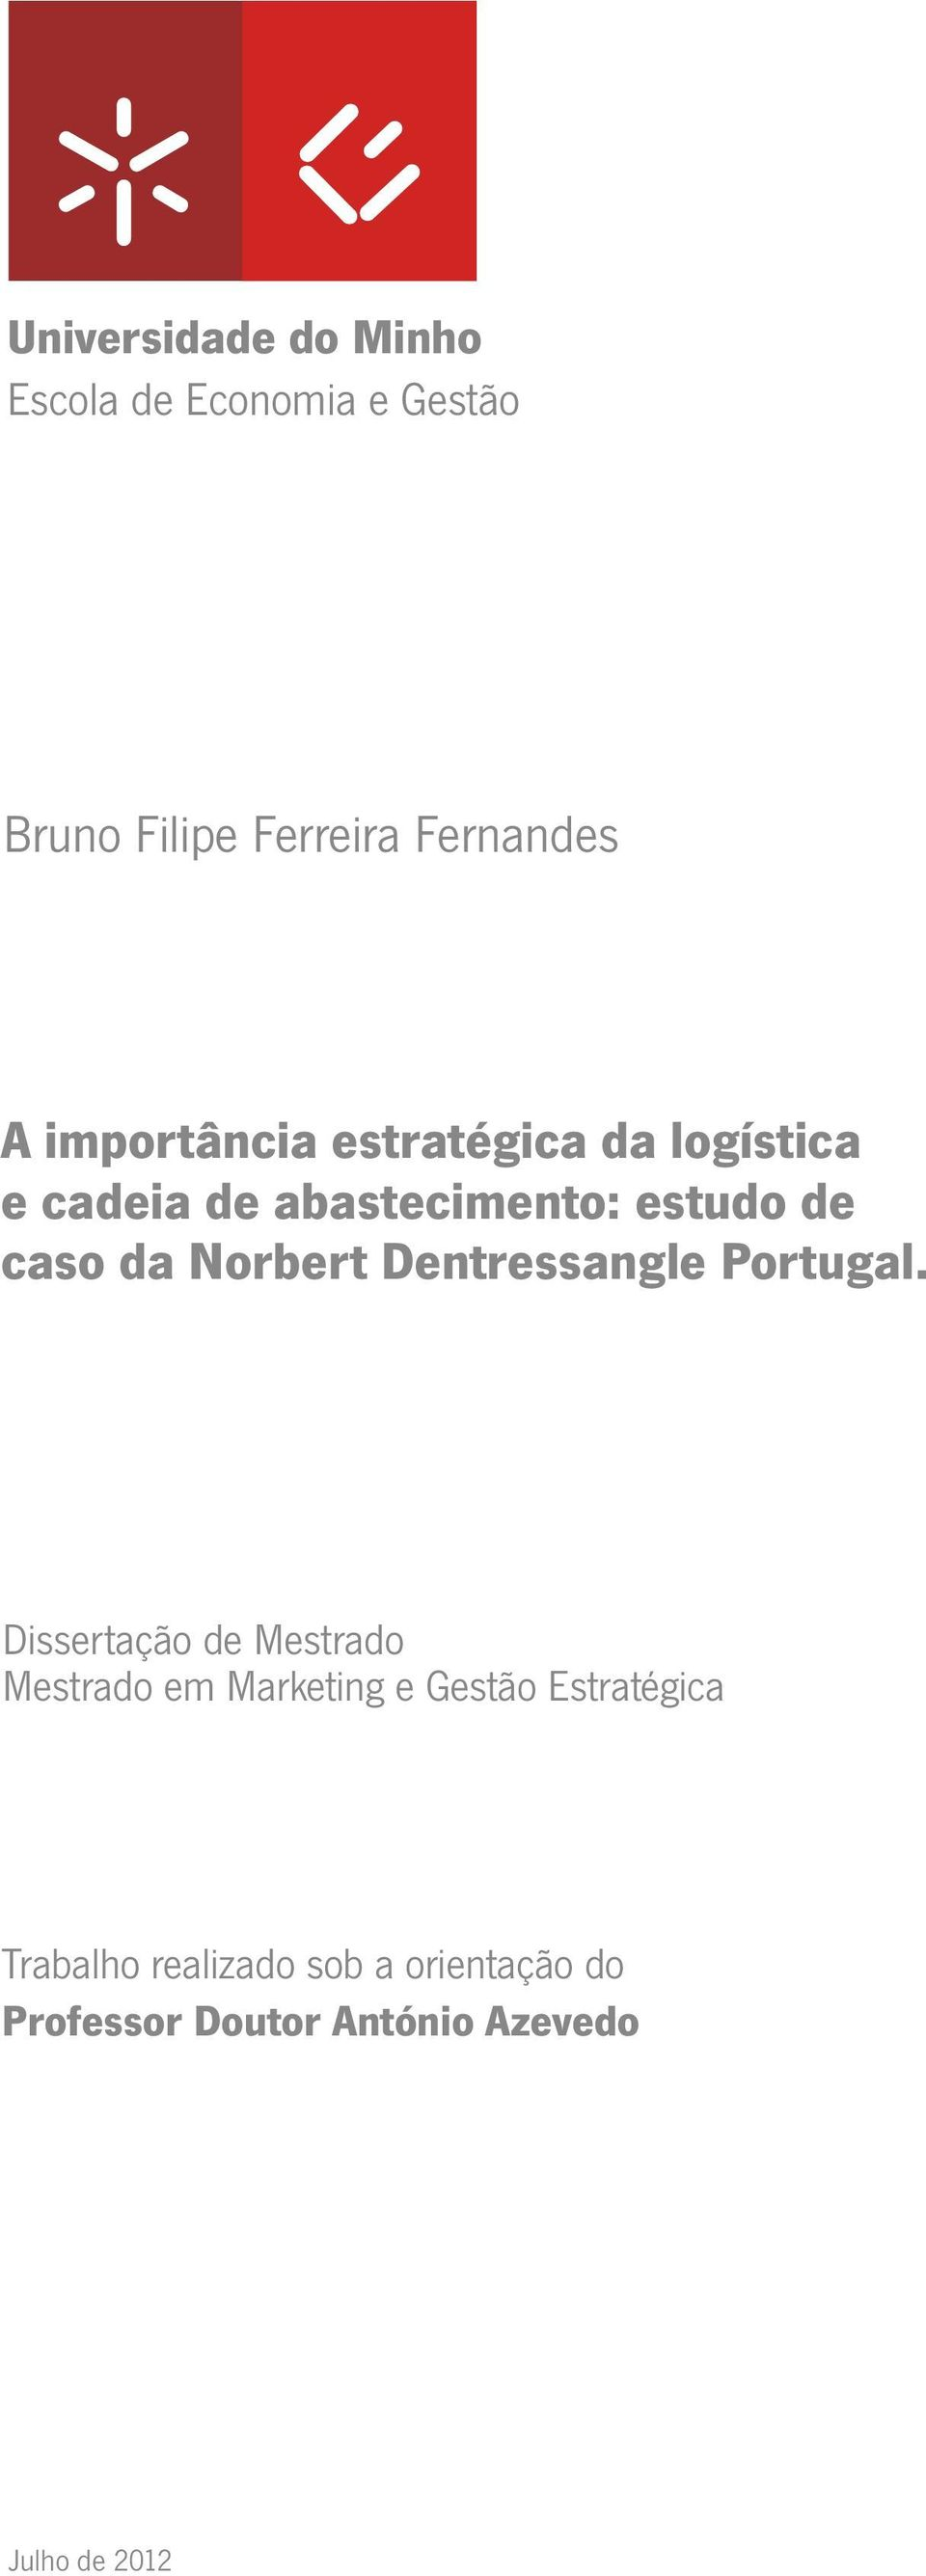 Norbert Dentressangle Portugal.